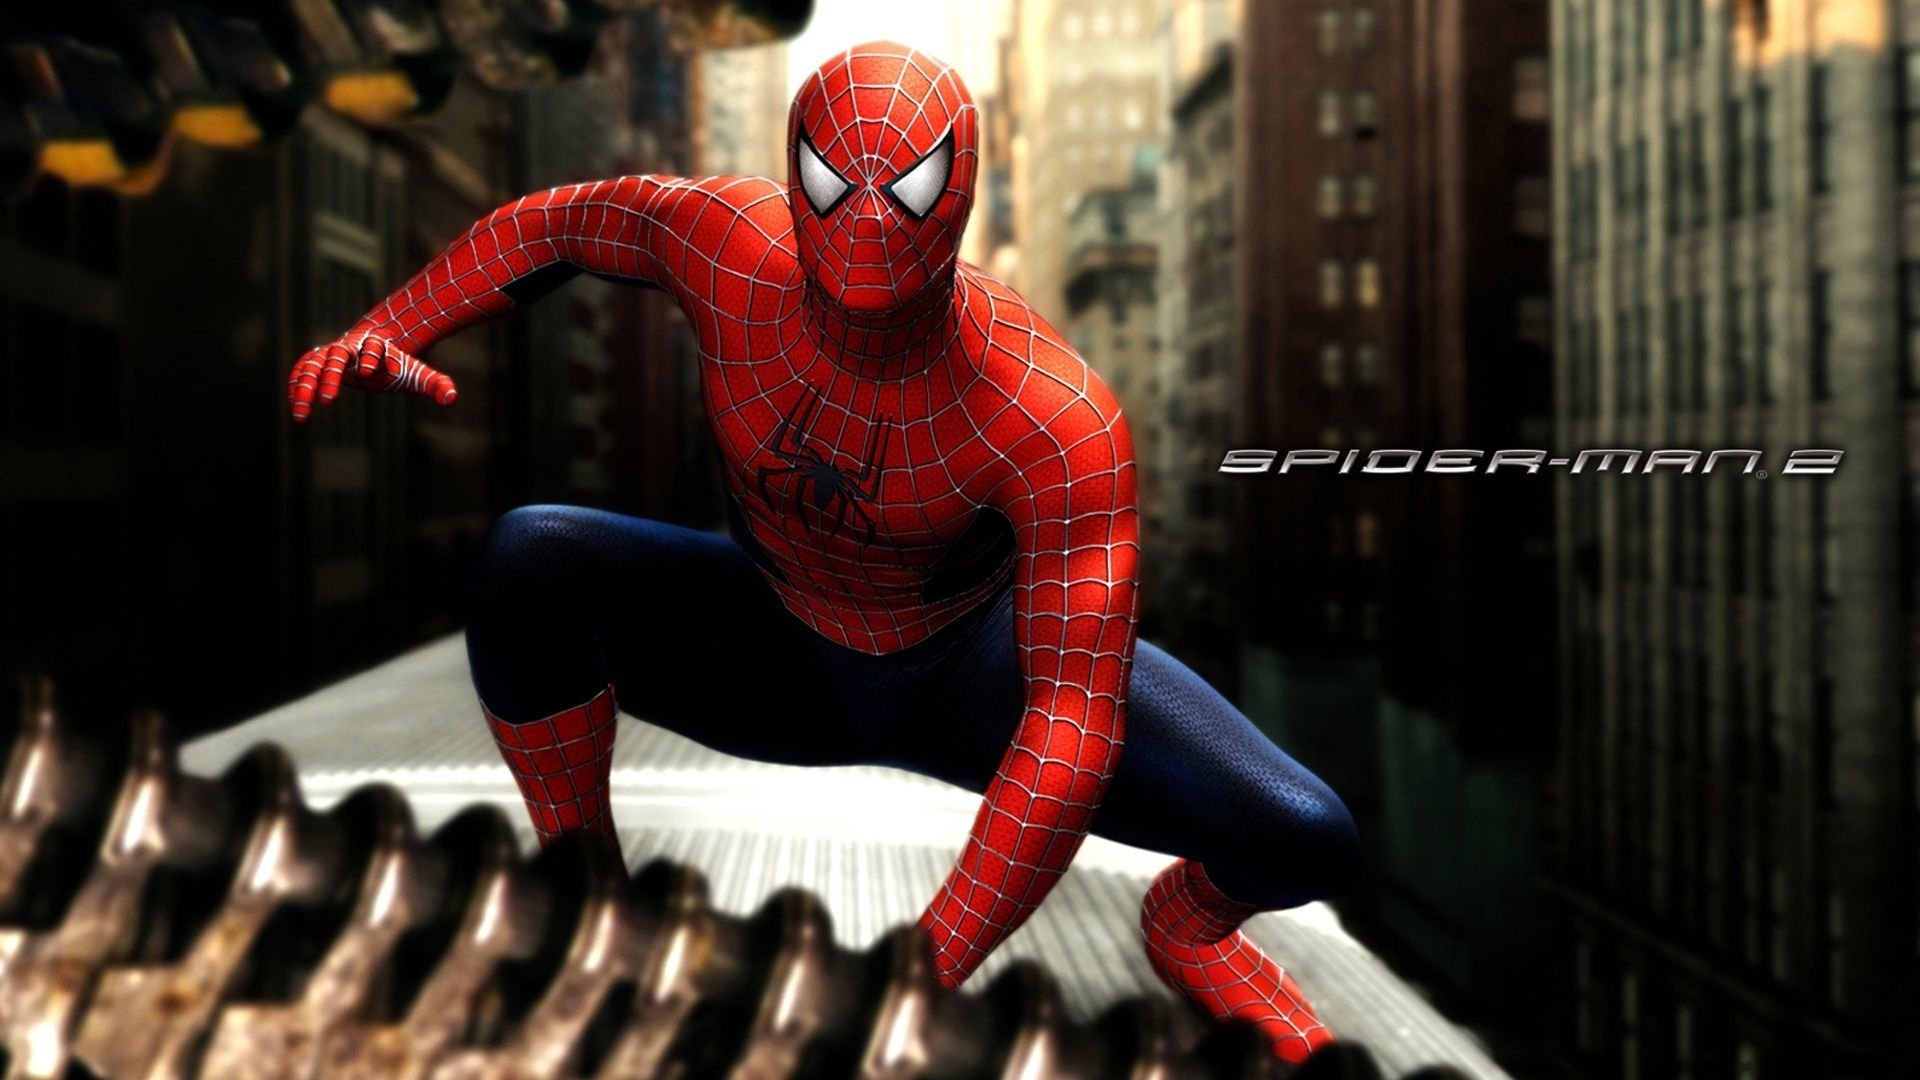 10 New Spider Man 2 Wallpaper FULL HD 1080p For PC Desktop